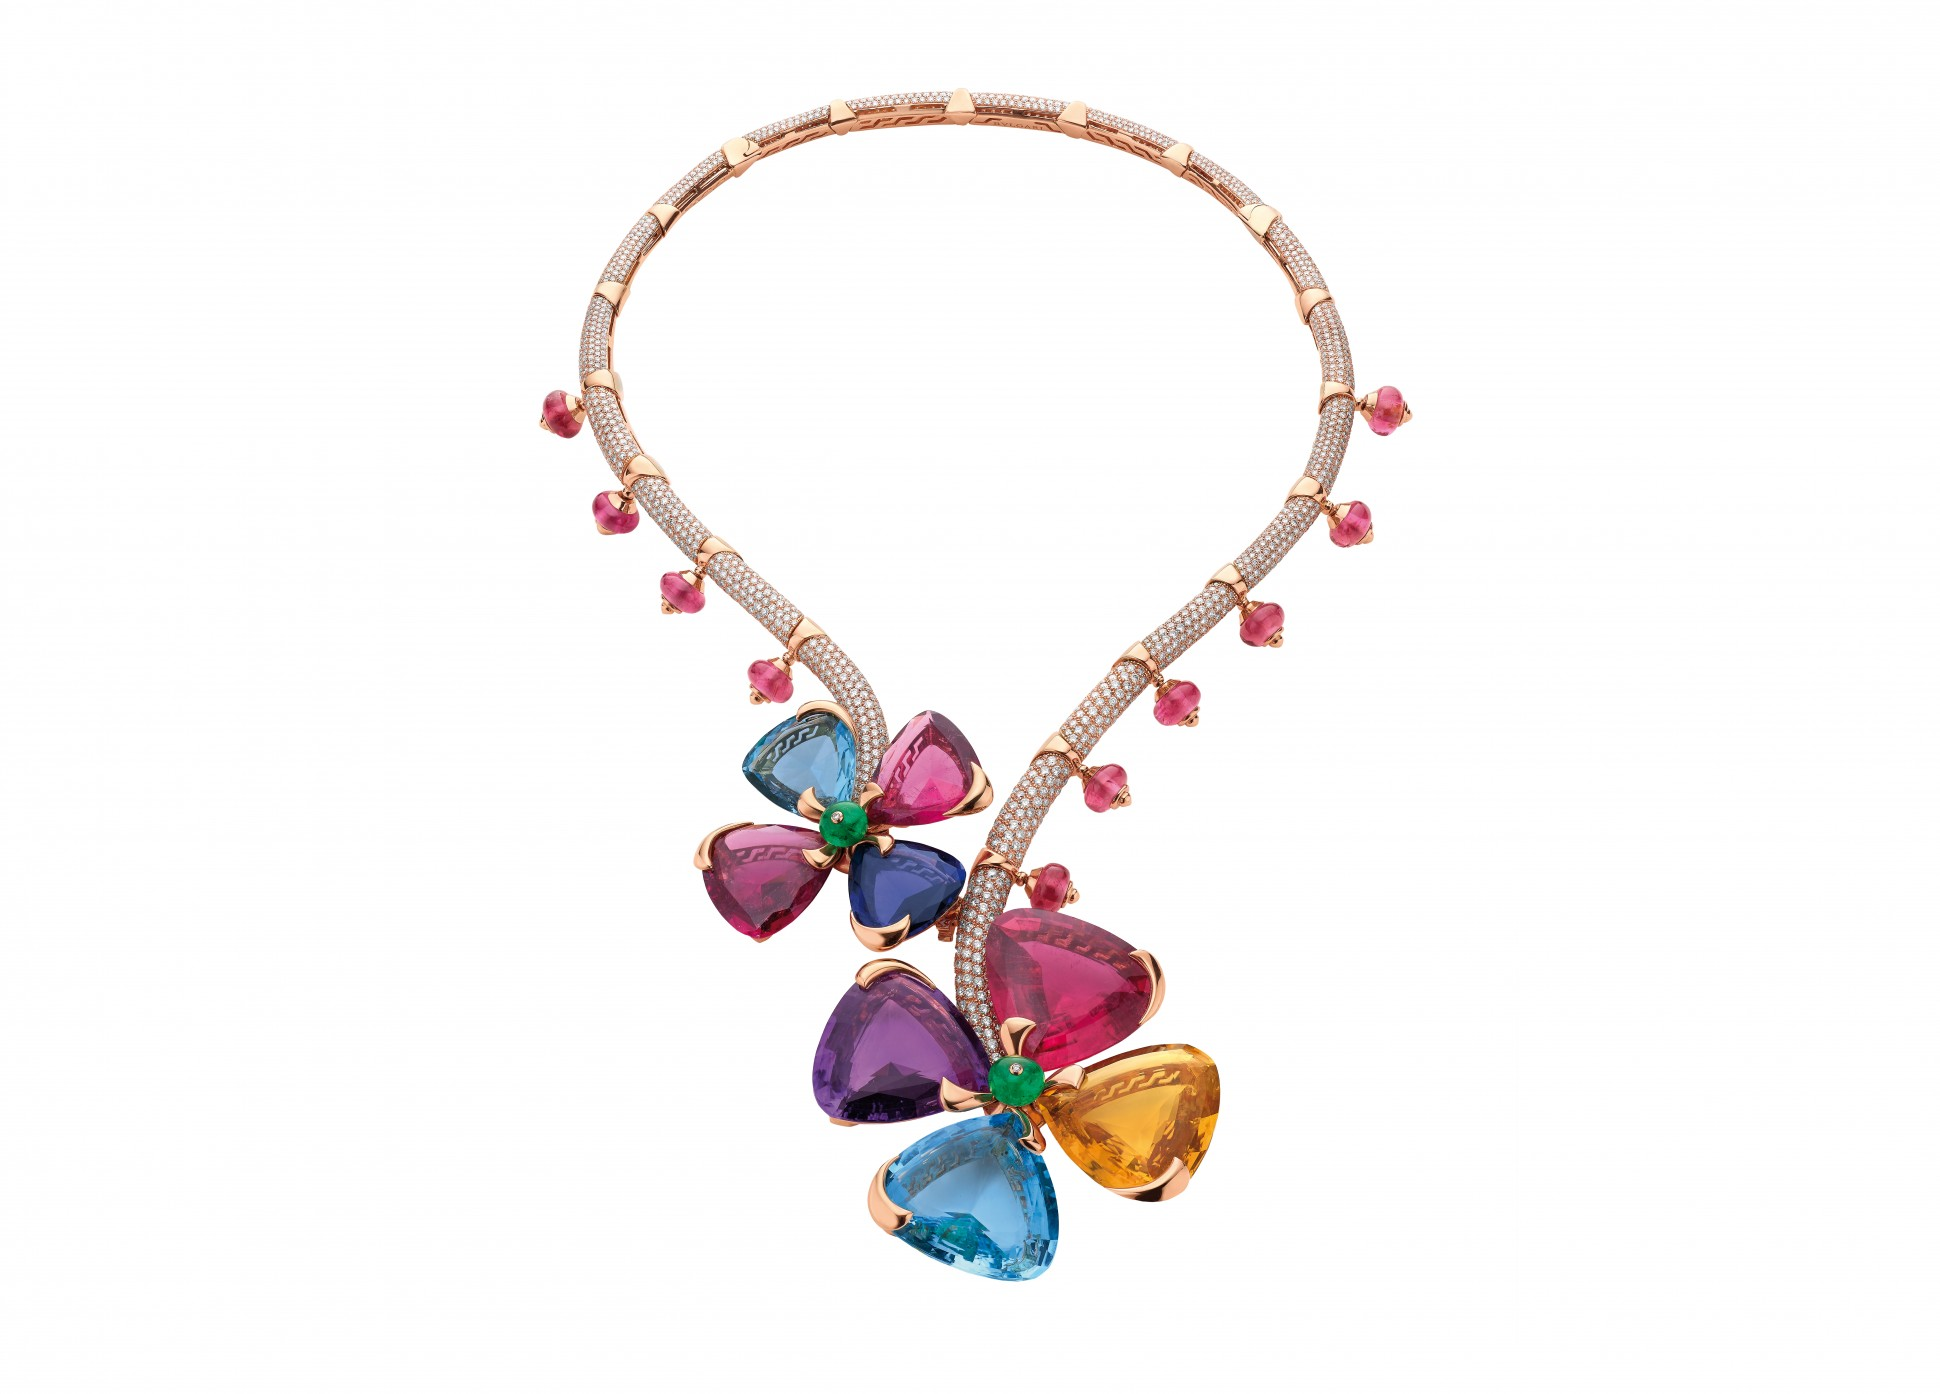 Bulgari's Secret Garden necklace